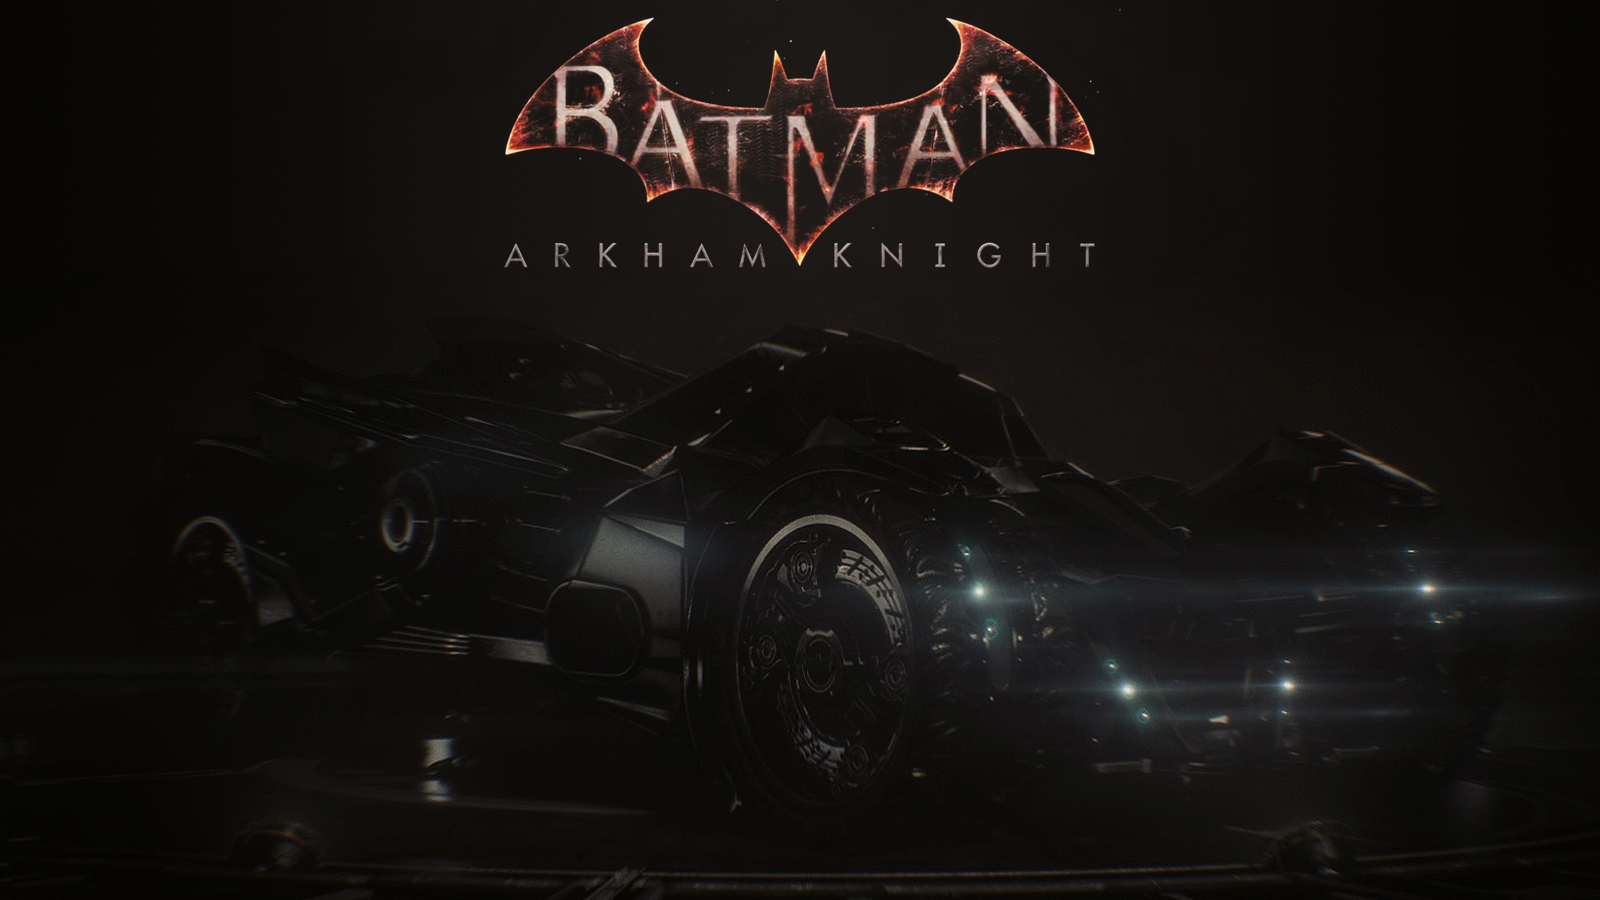 Arkham Knight Batmobile Wallpaper By Heypierce Customization 1600x900